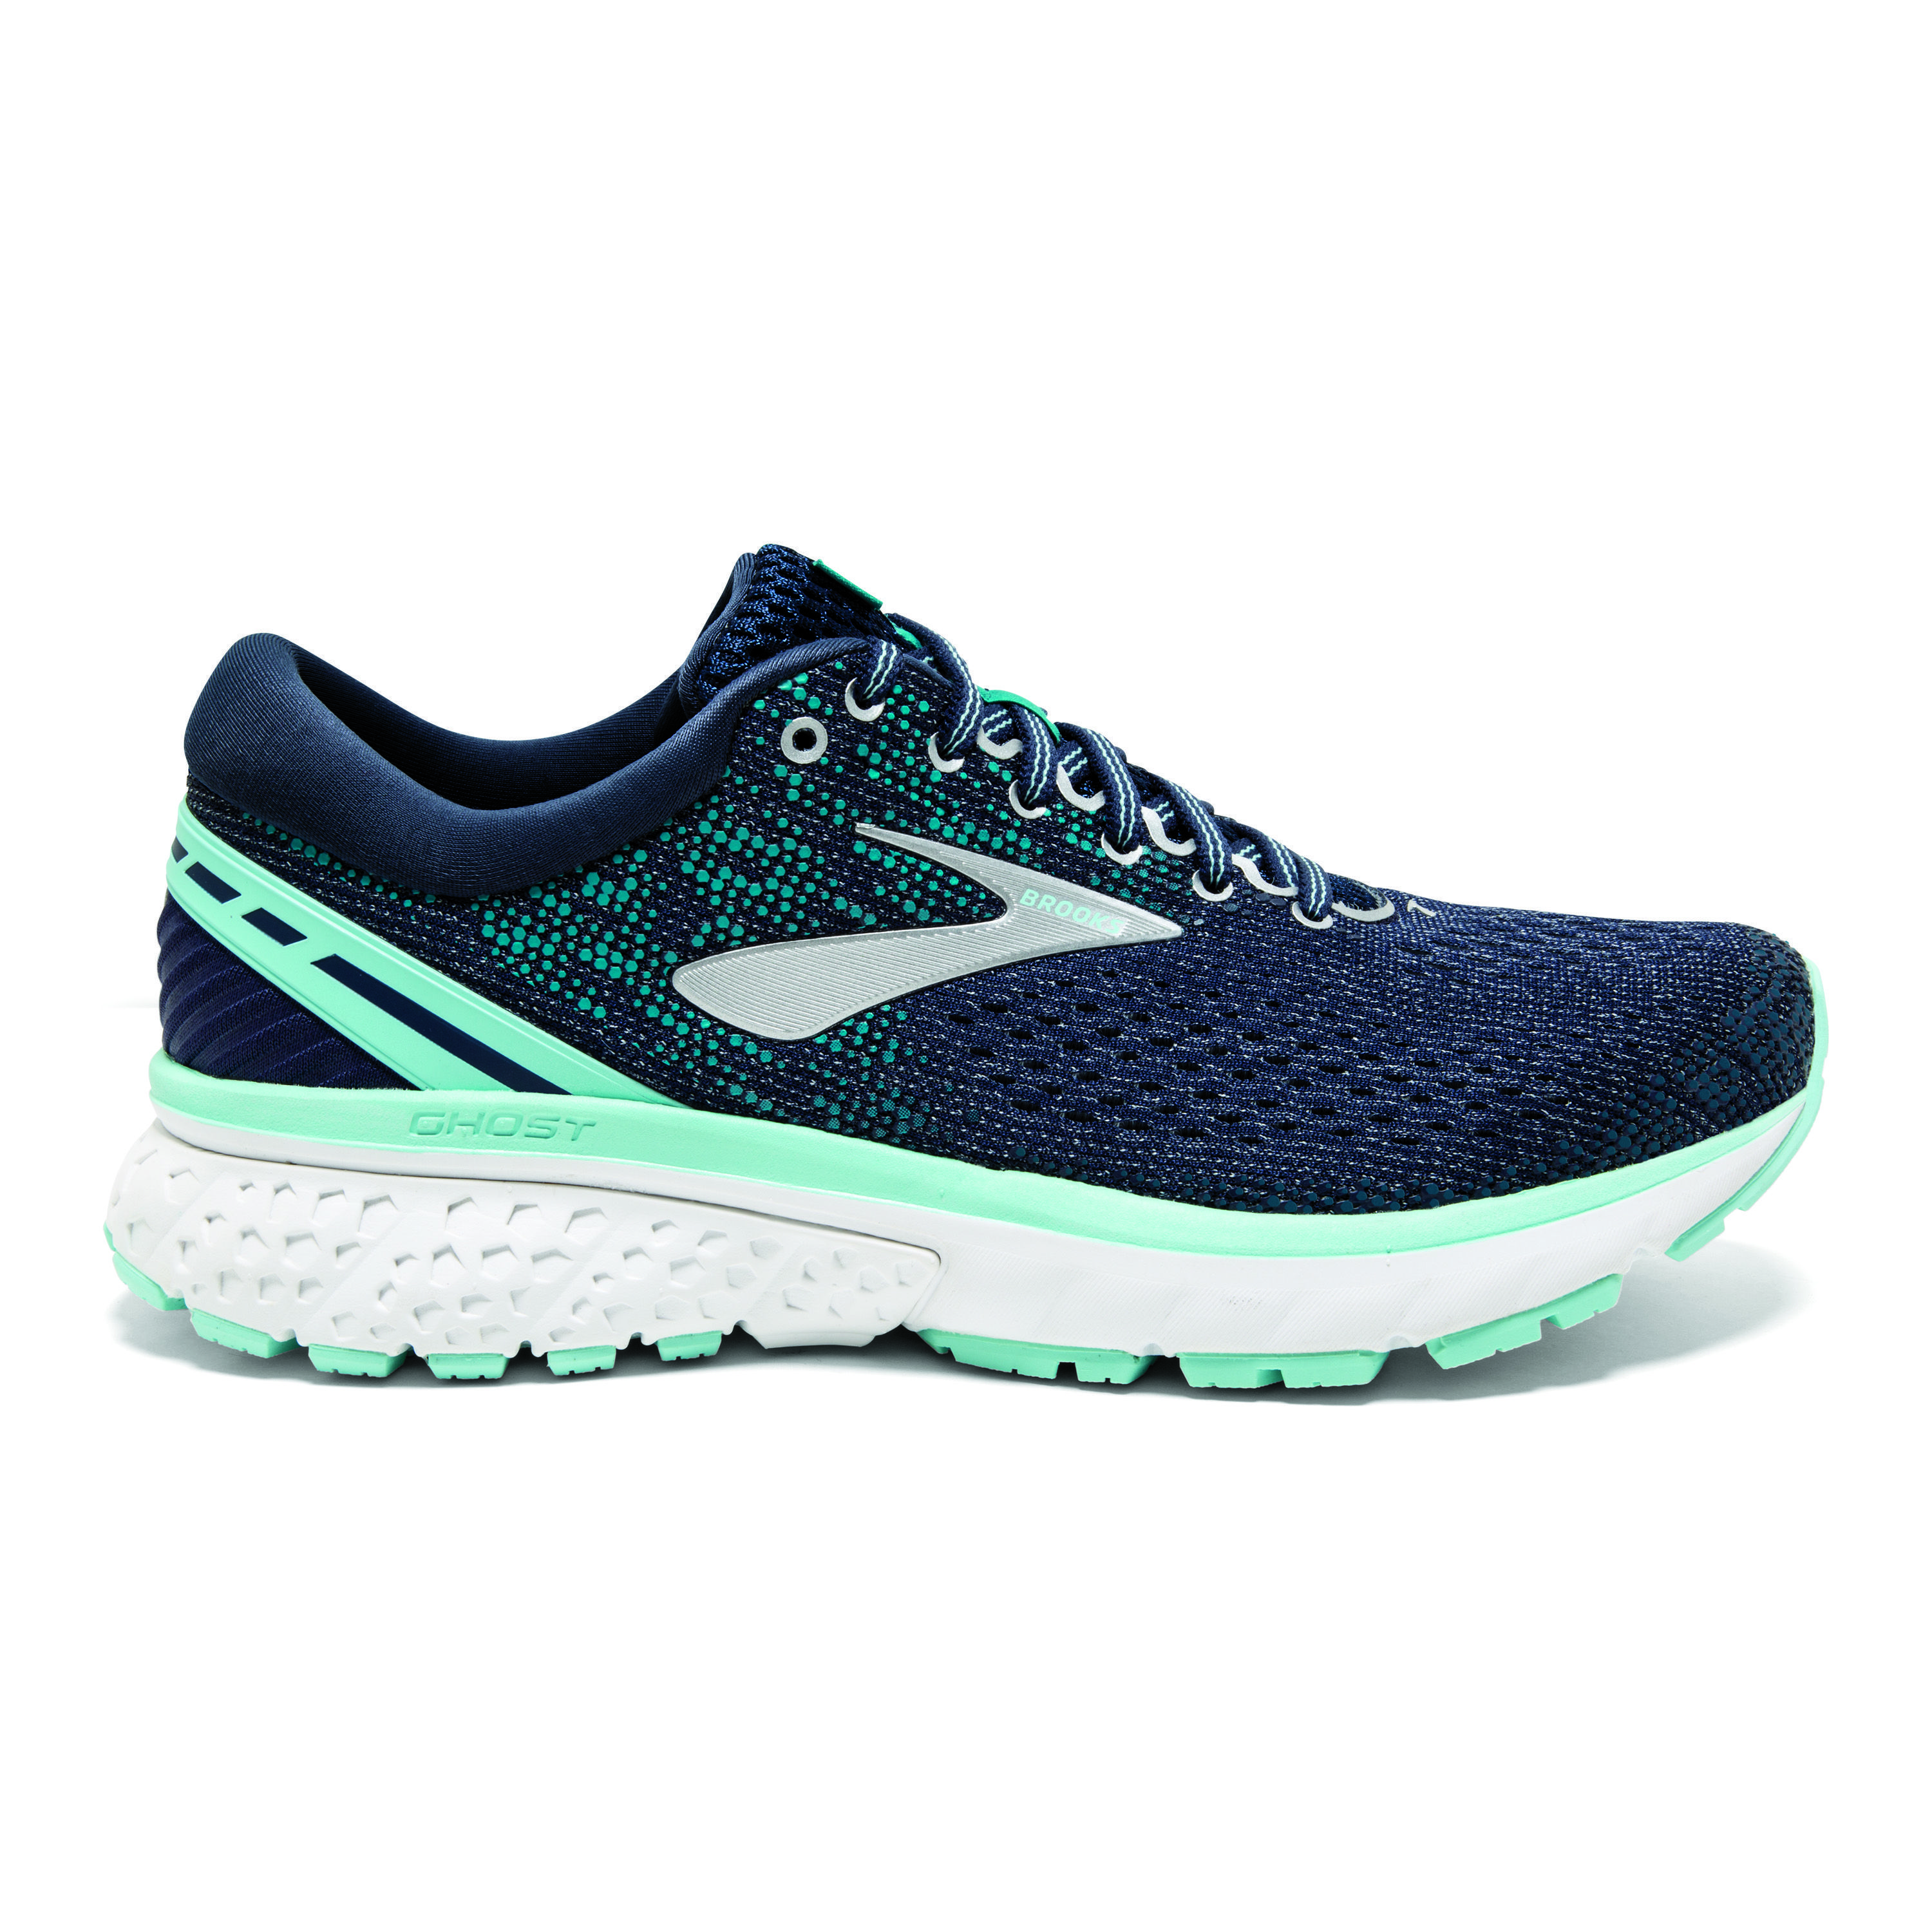 Running Shoes on Sale | Score the Best